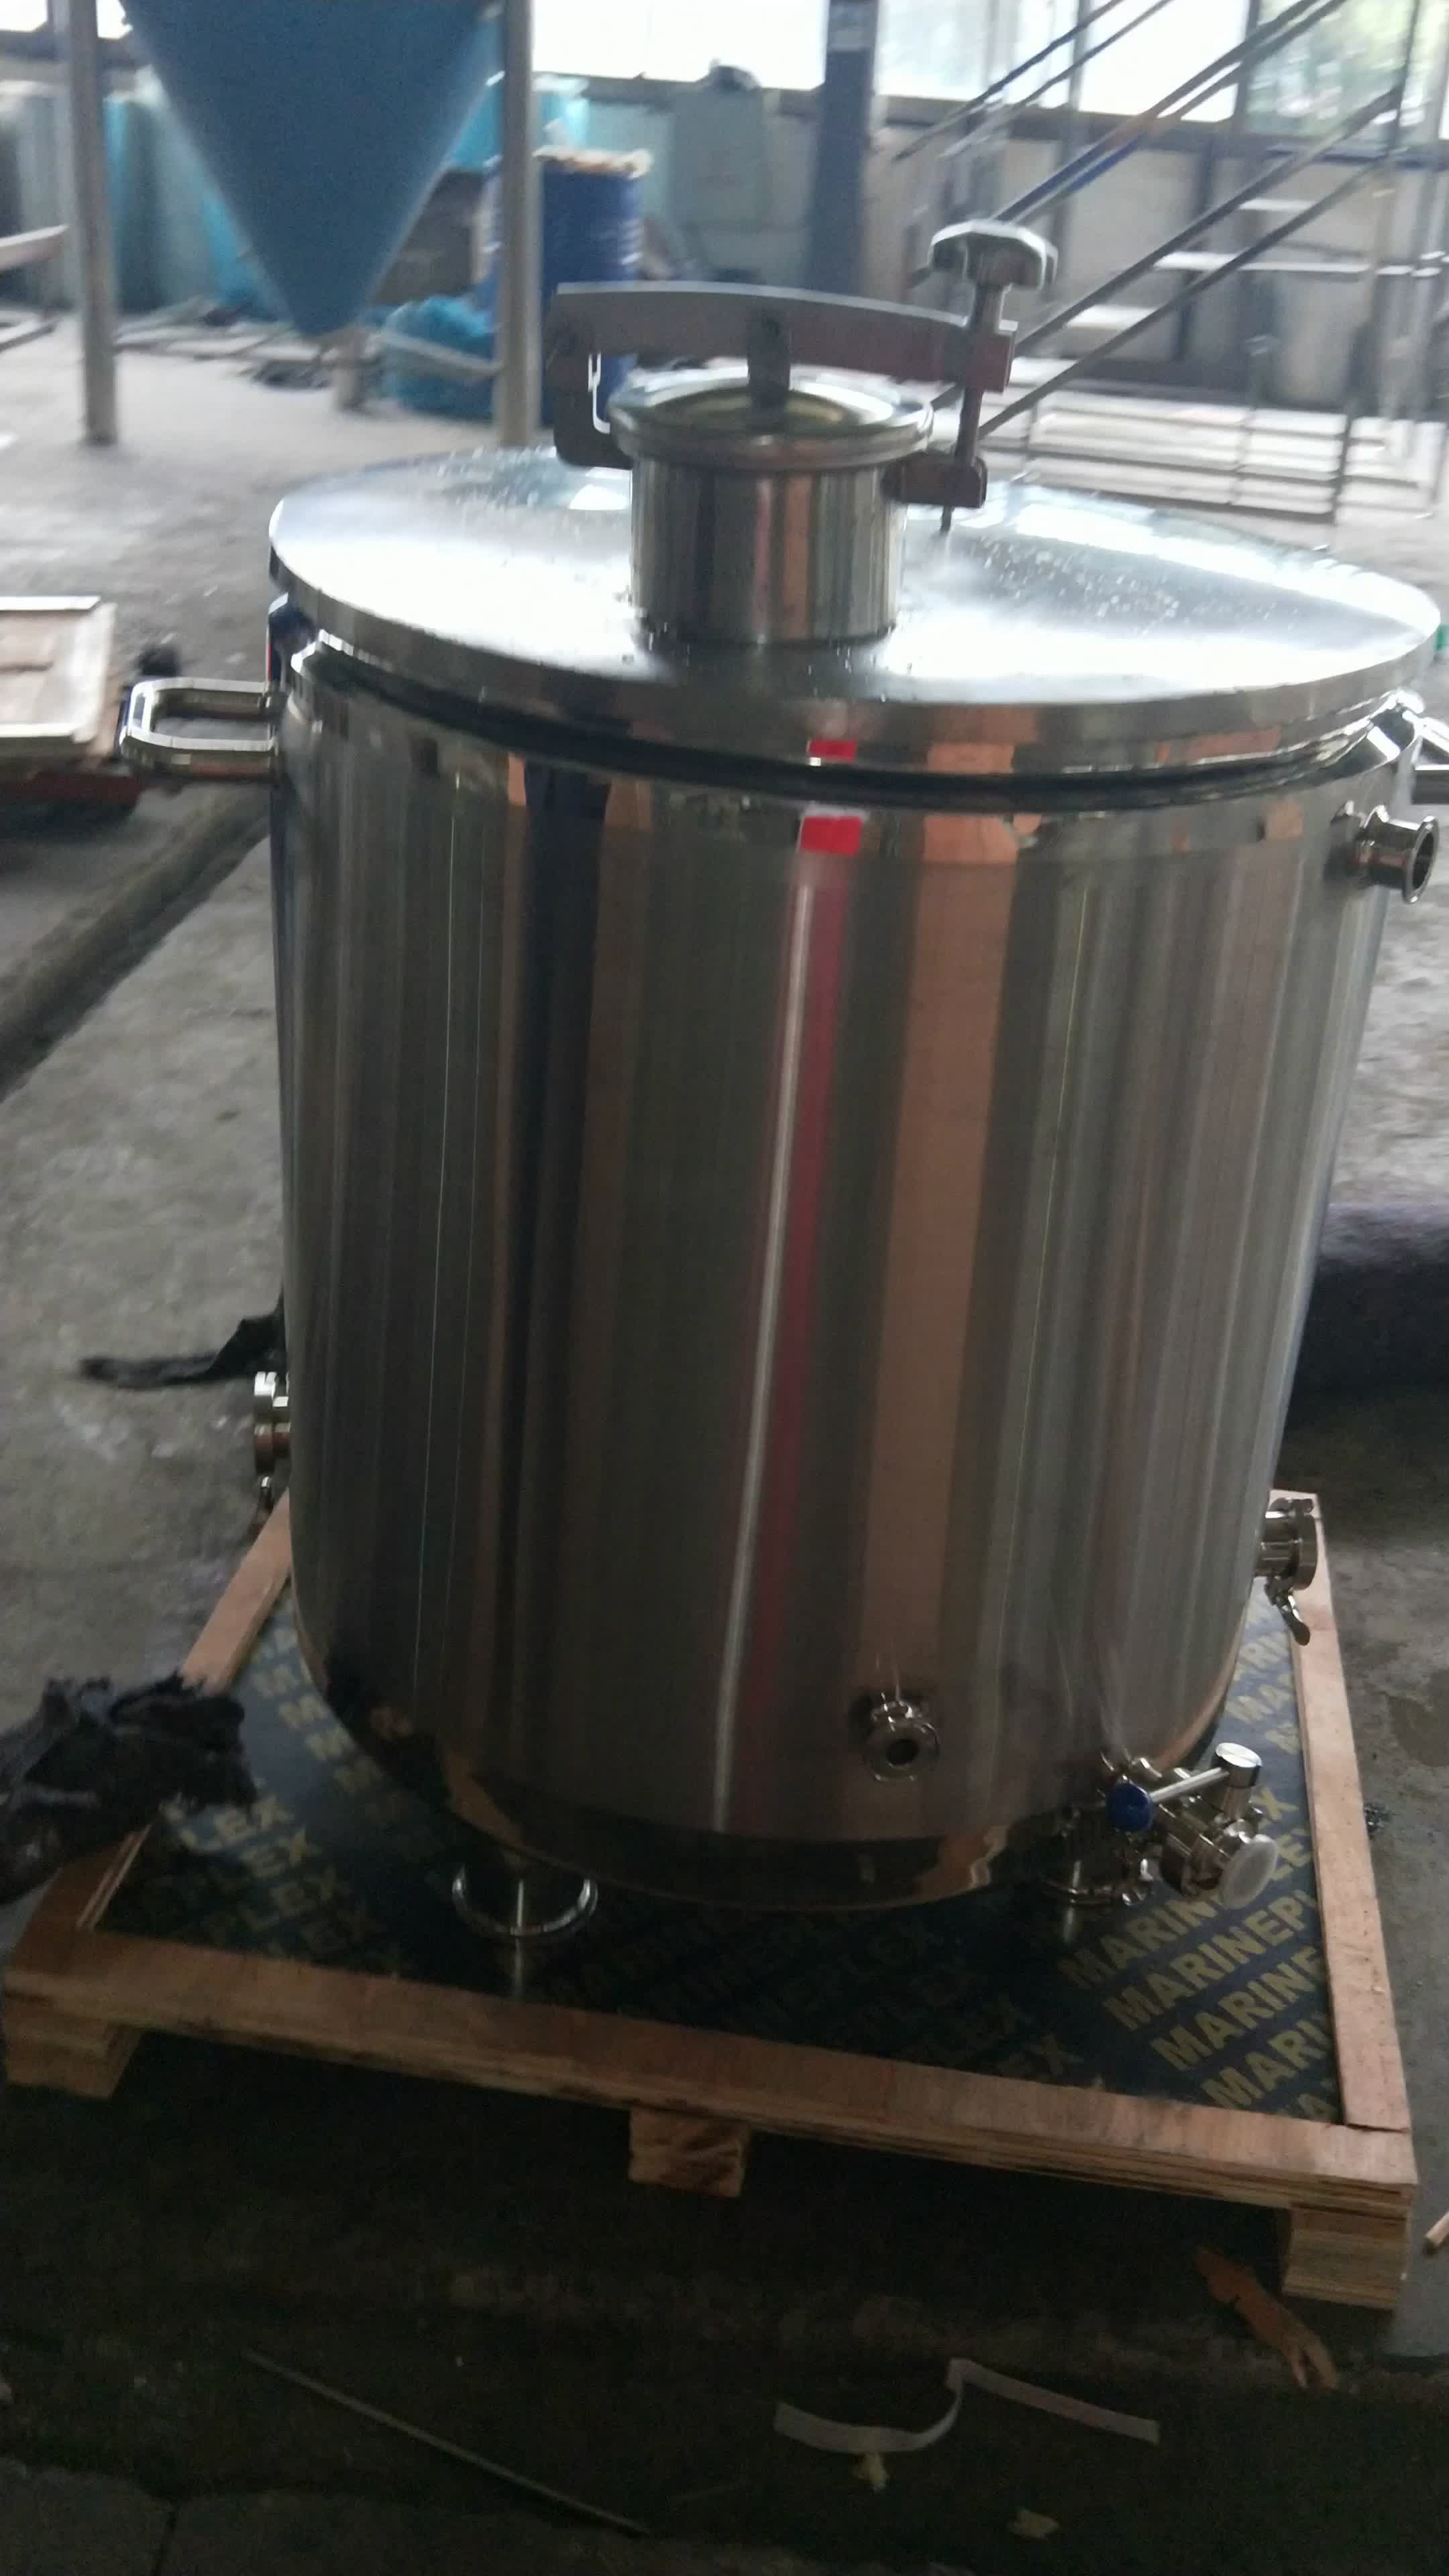 KUNBO 200 Liter Stainless Steel Beer Brewing System Brewhouse Equipment Tank